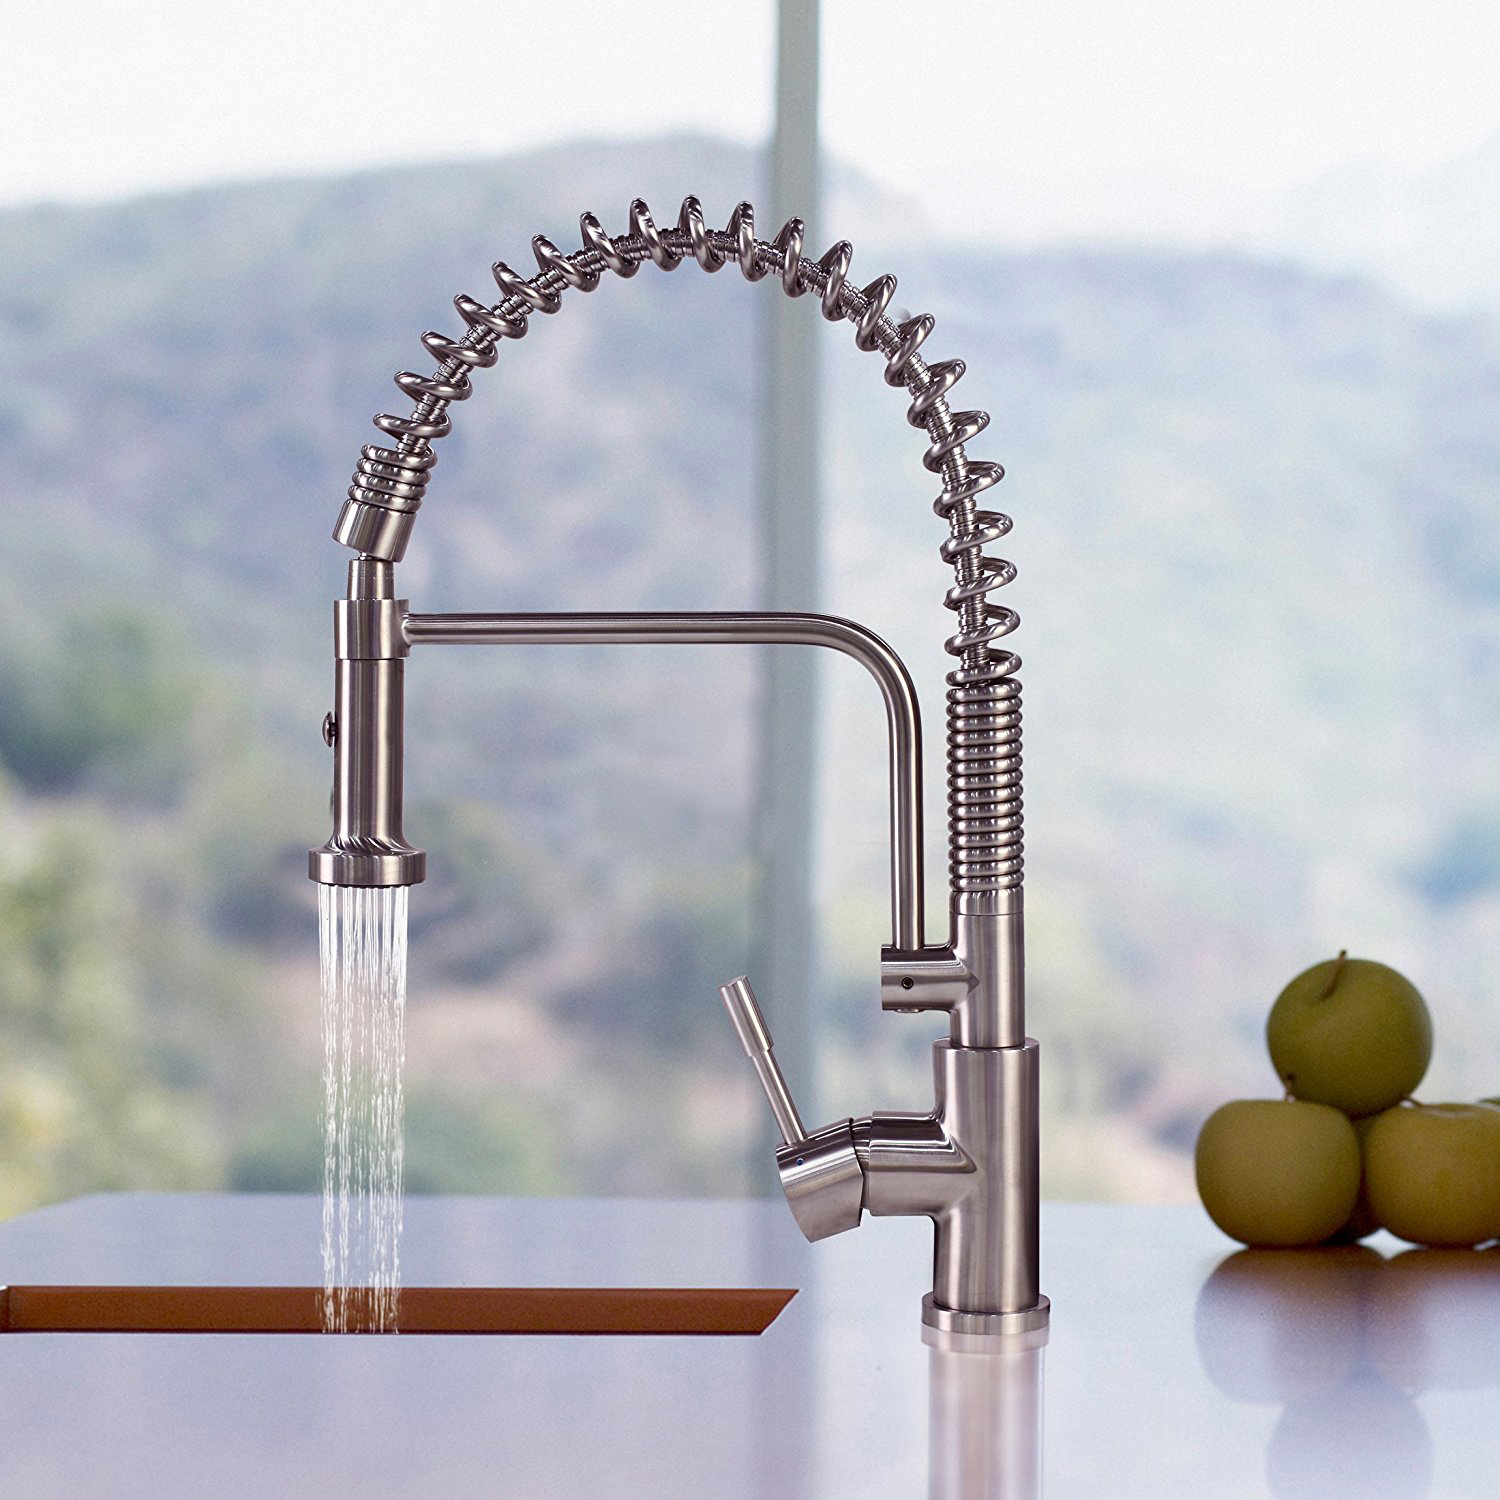 peerless spout mount faucet wall choice faucets standard kitchen in on sale p chrome handle